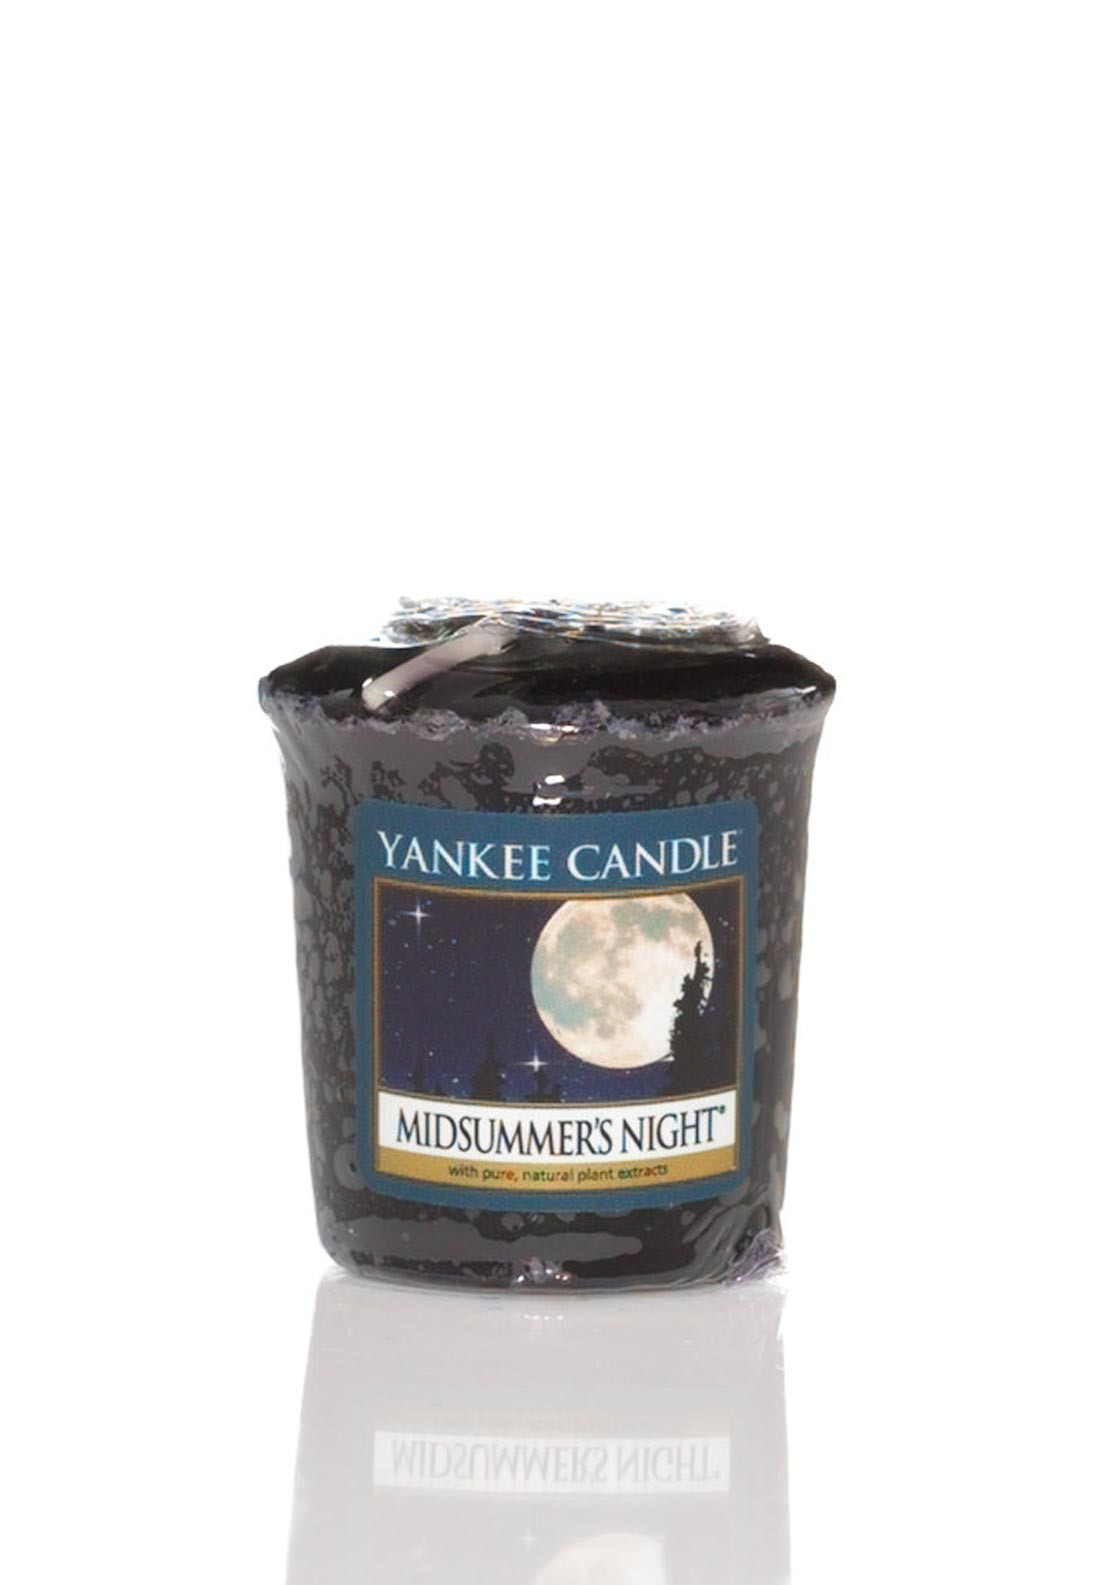 Yankee Candle Sampler Votive Candle, Midsummer's Night